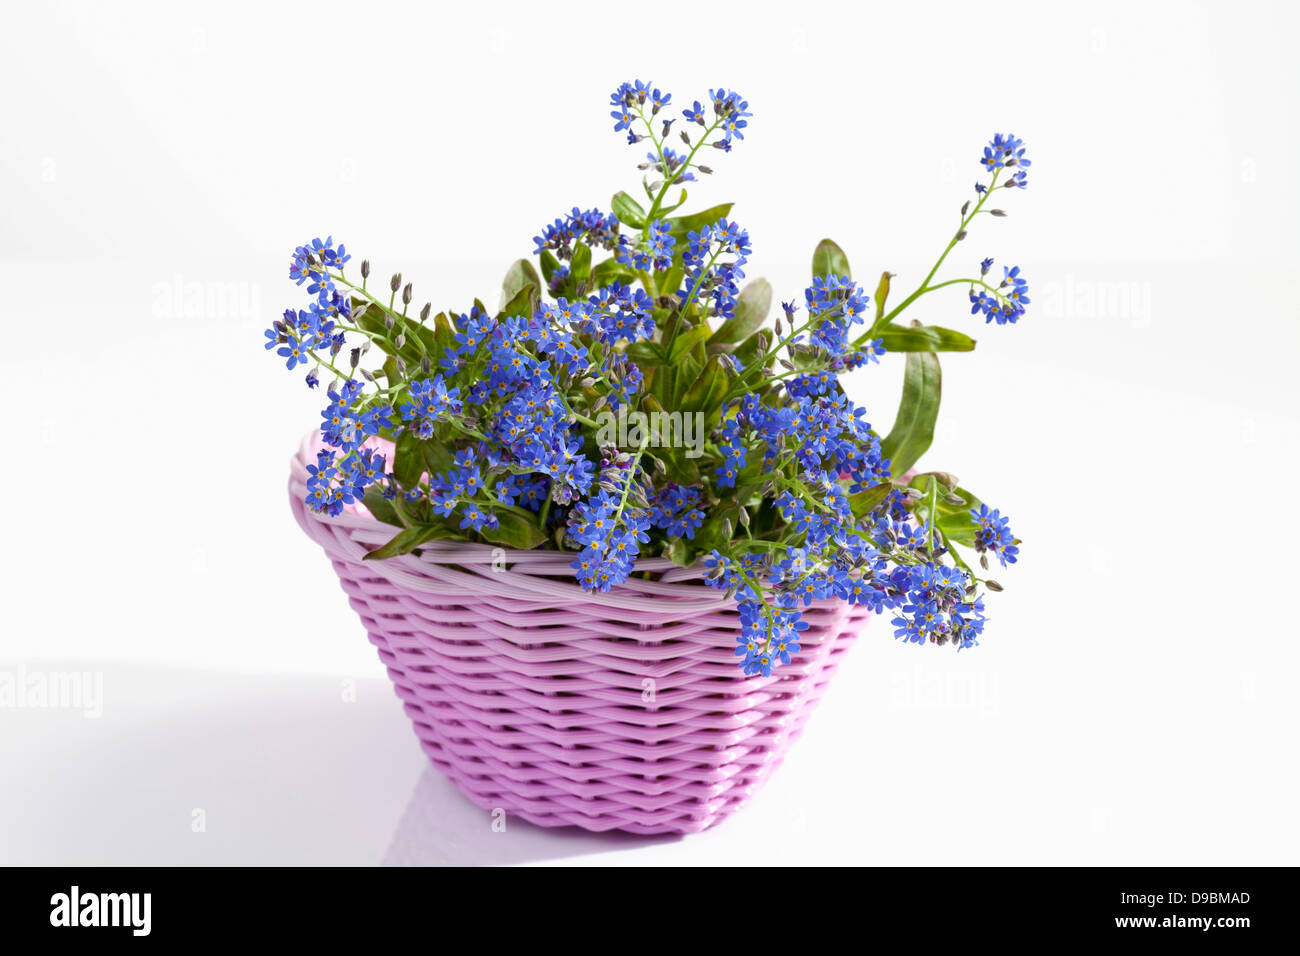 Potted Plant Of Forget Me Not Flowers On White Background Stock